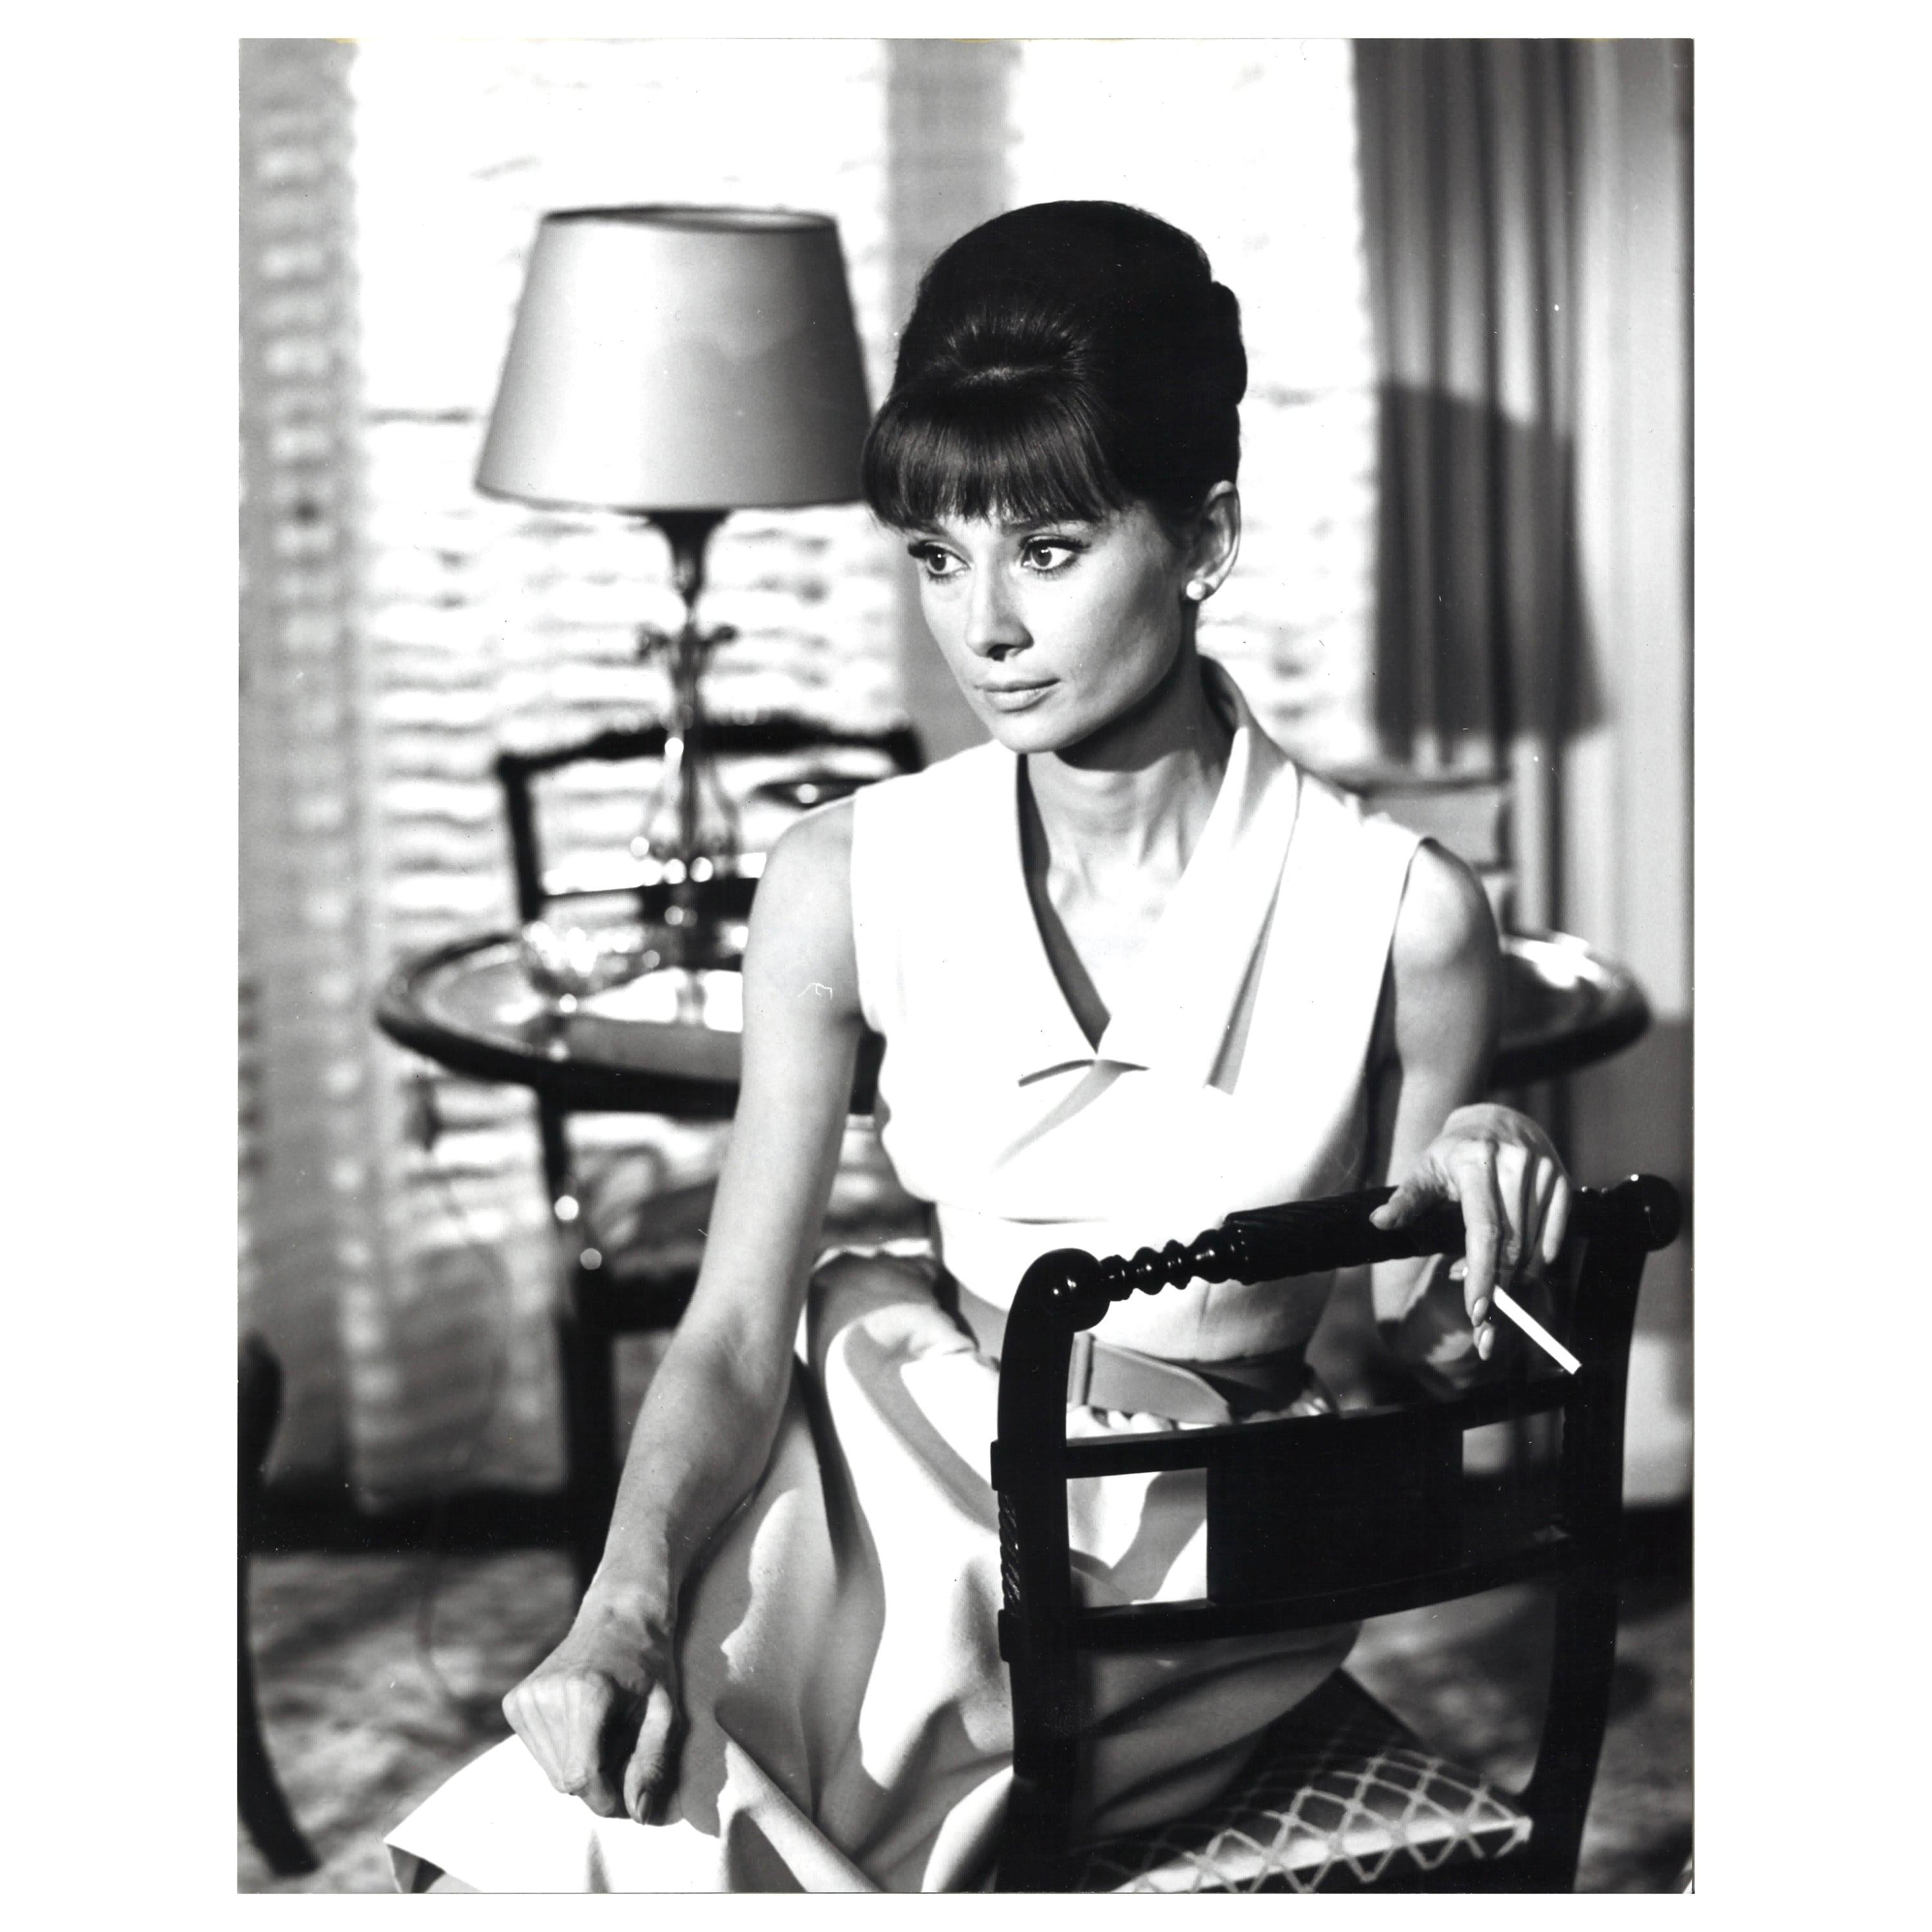 From the Personal collection of Audrey Hepburn, Photo by Vincent Rossell, 1962